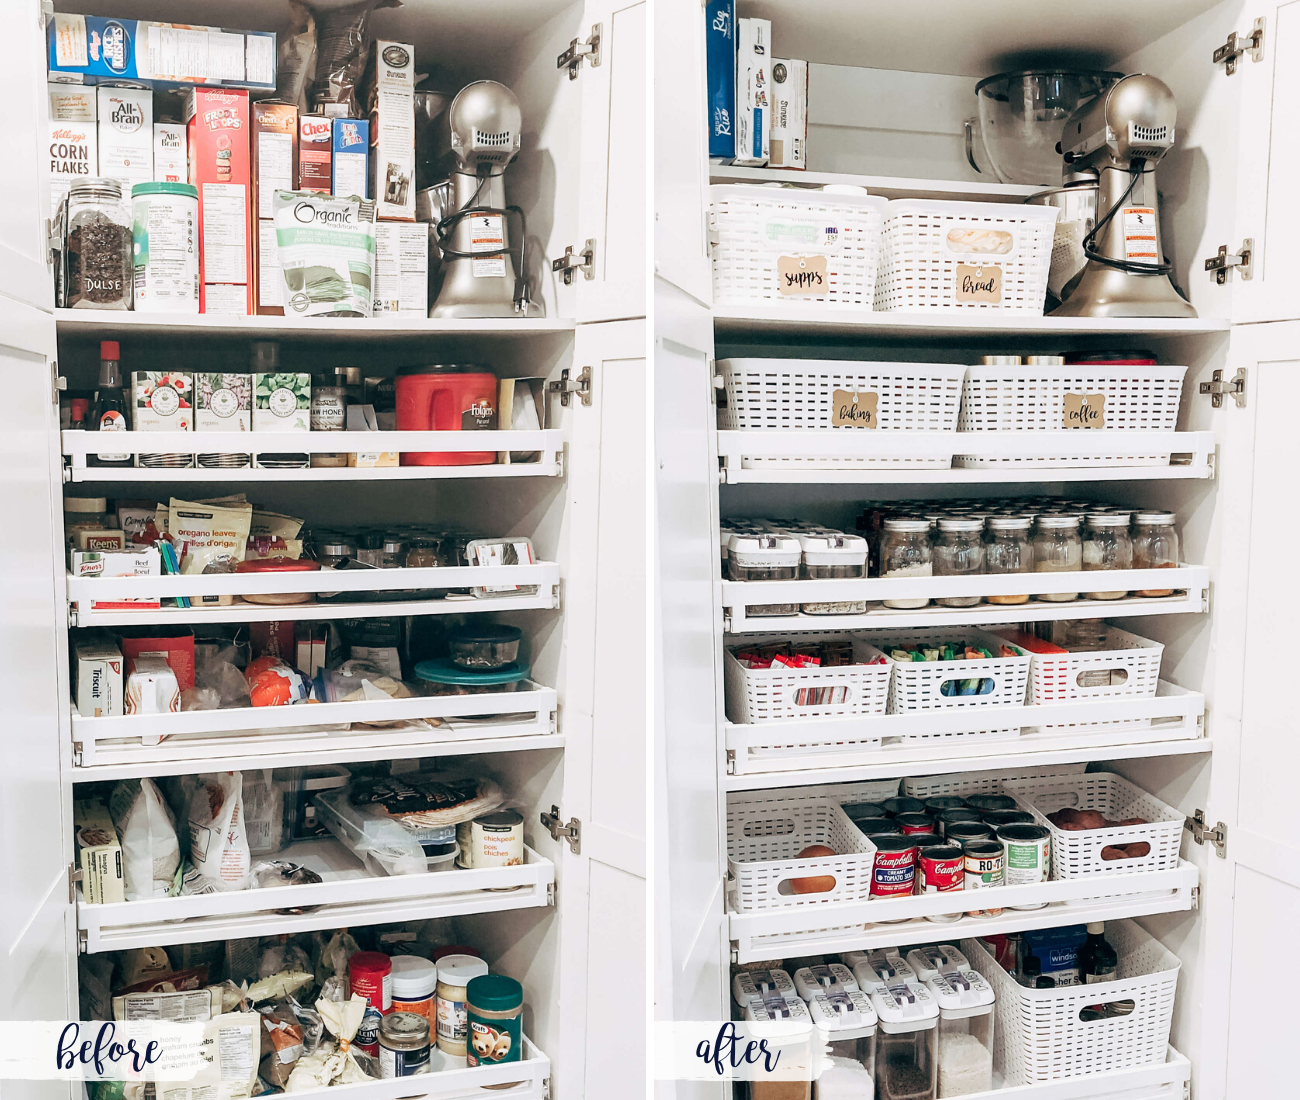 Having a hard time finding items in your pantry? Keep reading for my 5 simple steps on how to organize your pull out pantry.